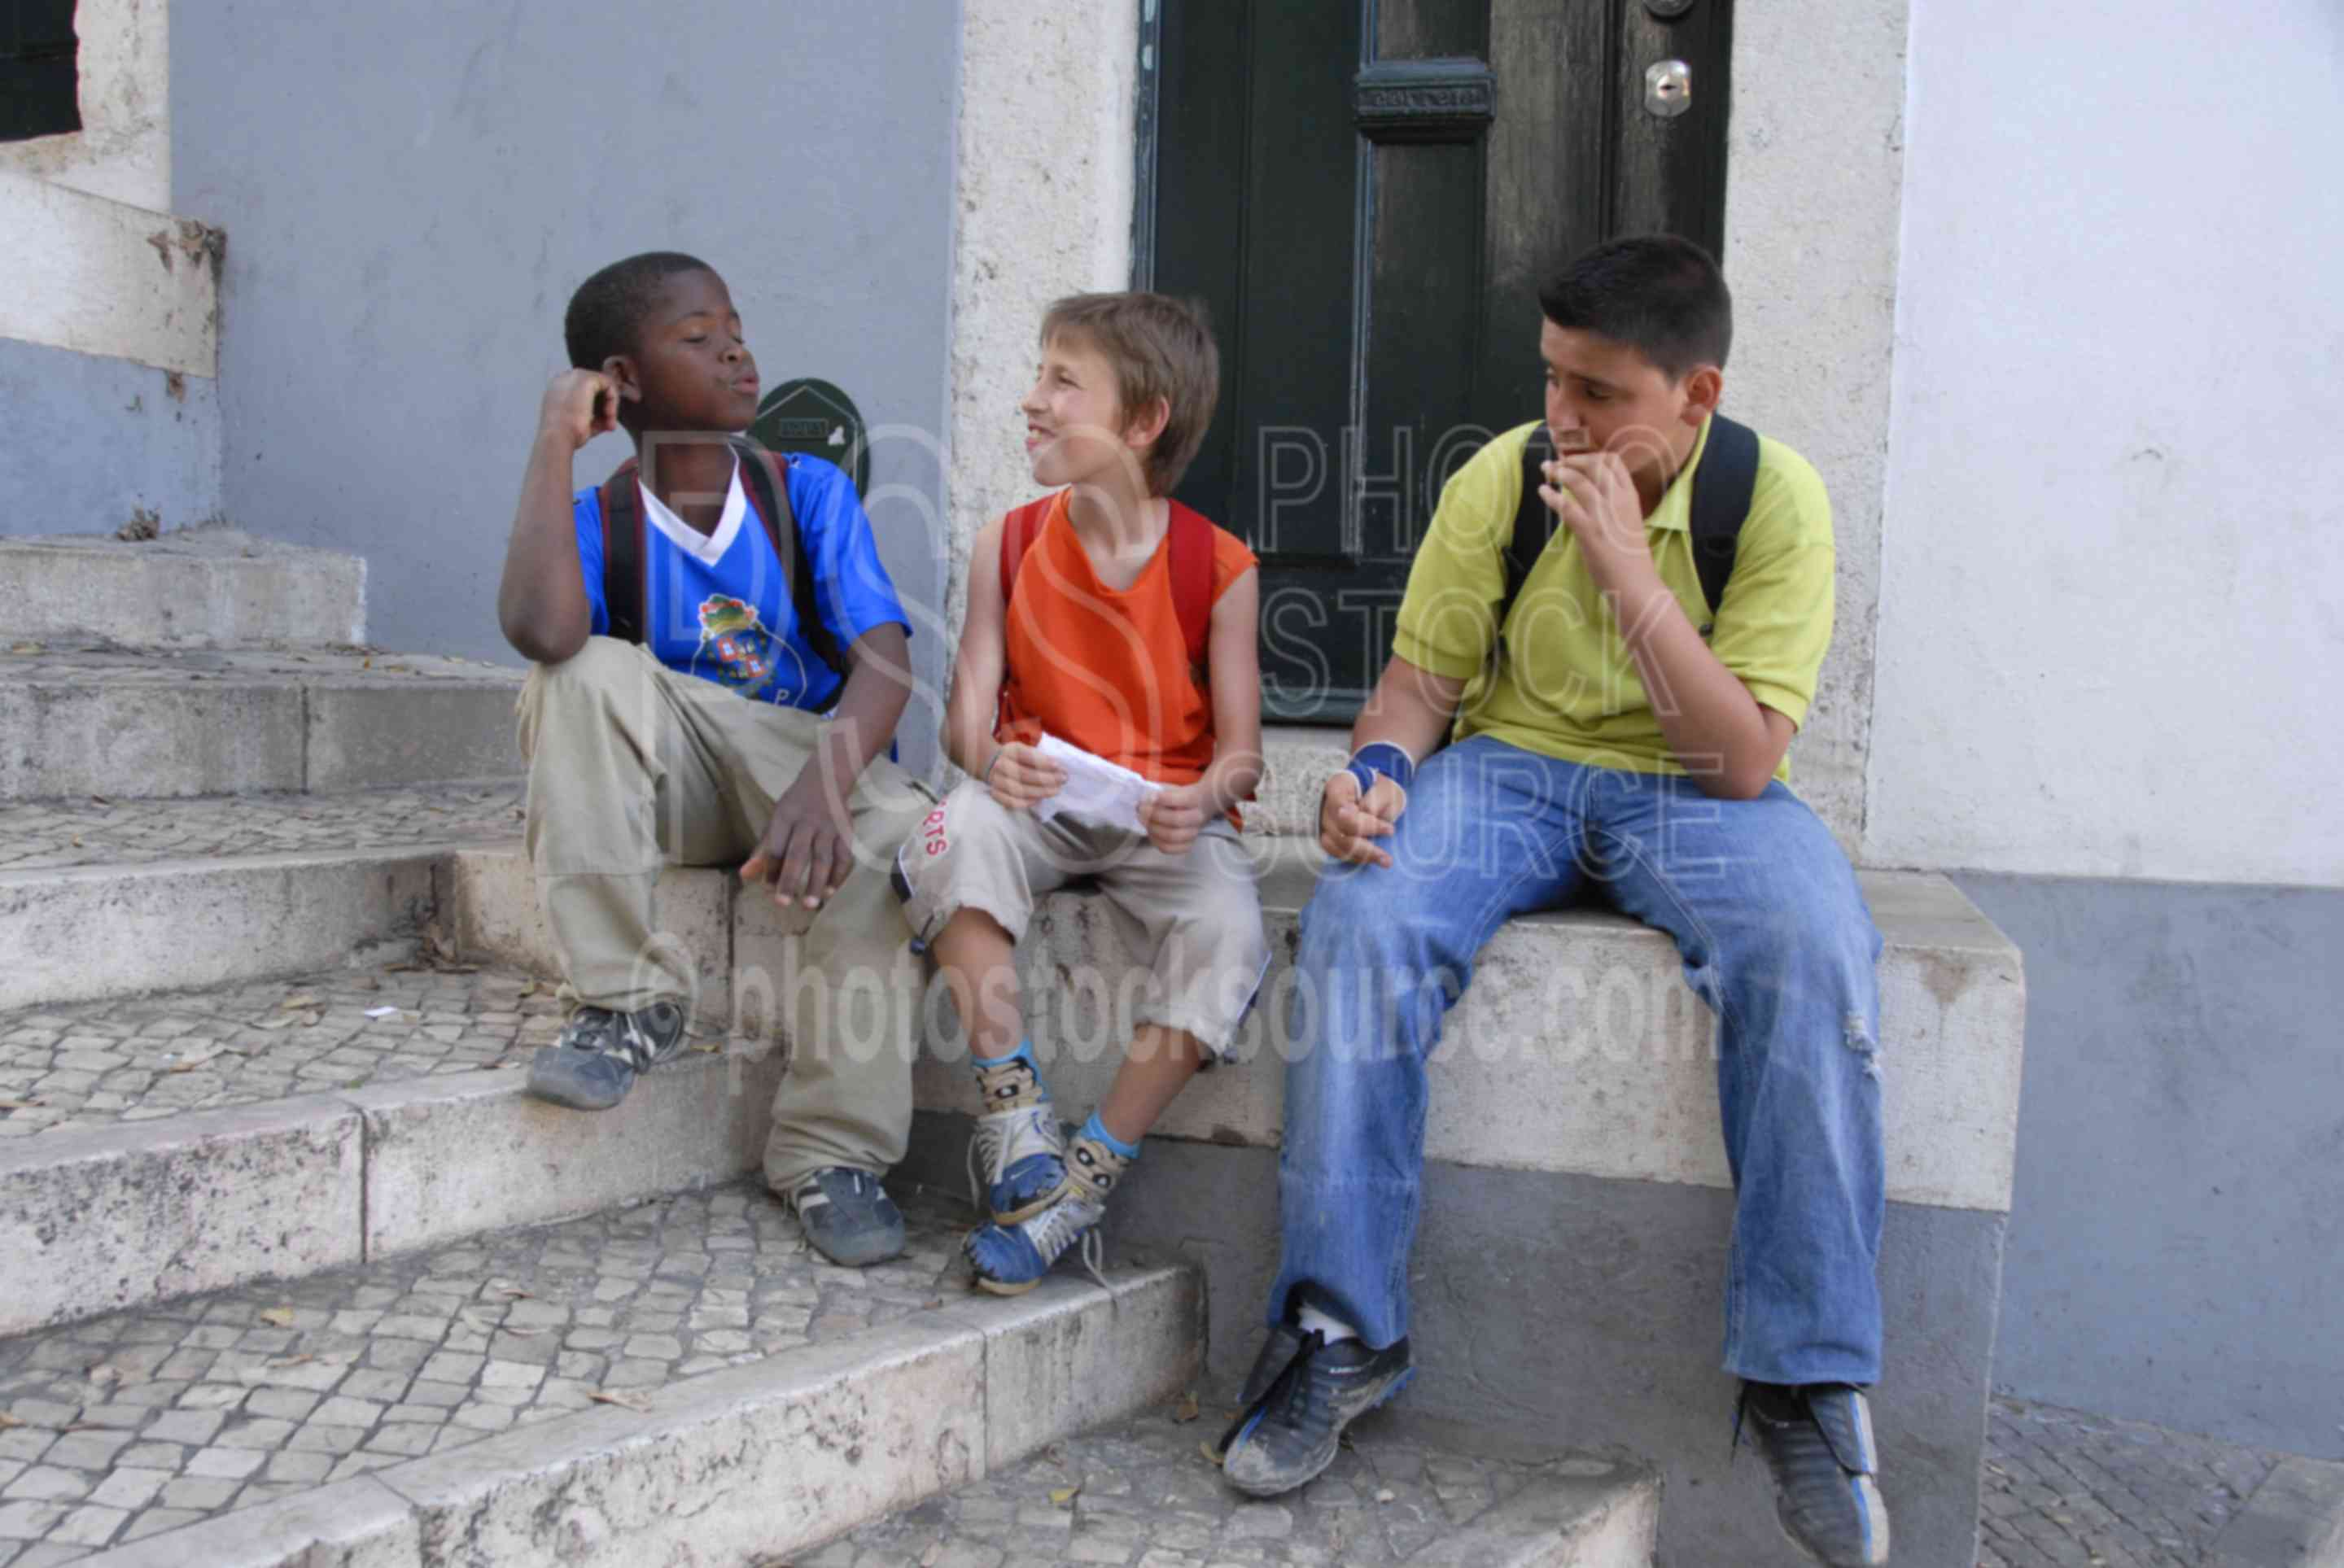 Three Friends,boys,friends,diversity,young,youth,teens,teenager